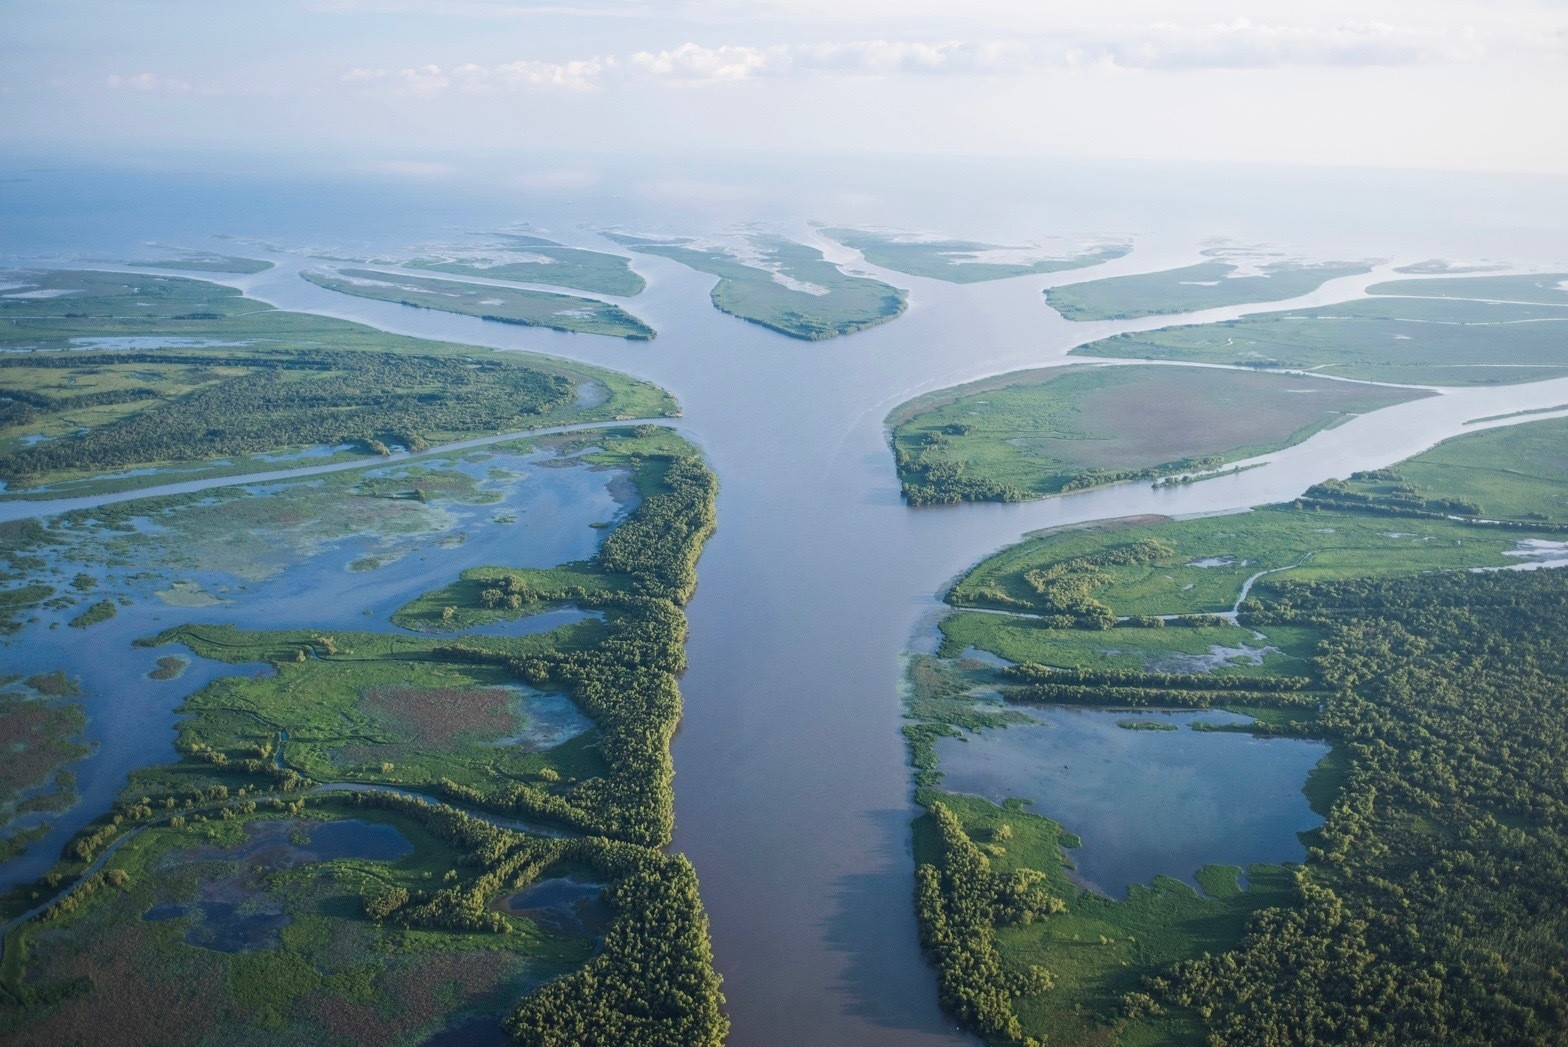 An aerial view of the Wax Lake Delta, Louisiana.